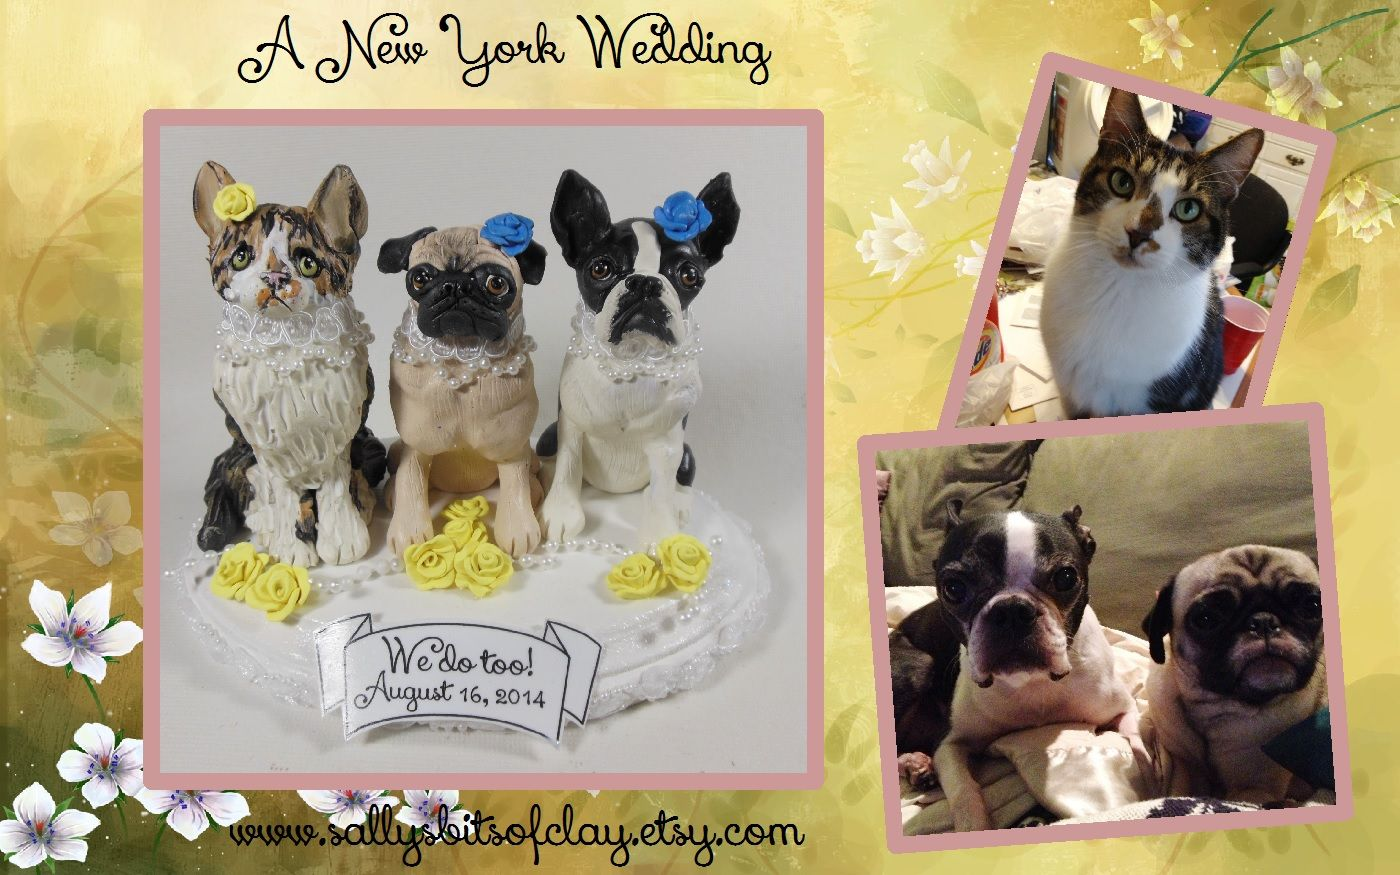 A new york wedding with pug and cats llysbitsofclay